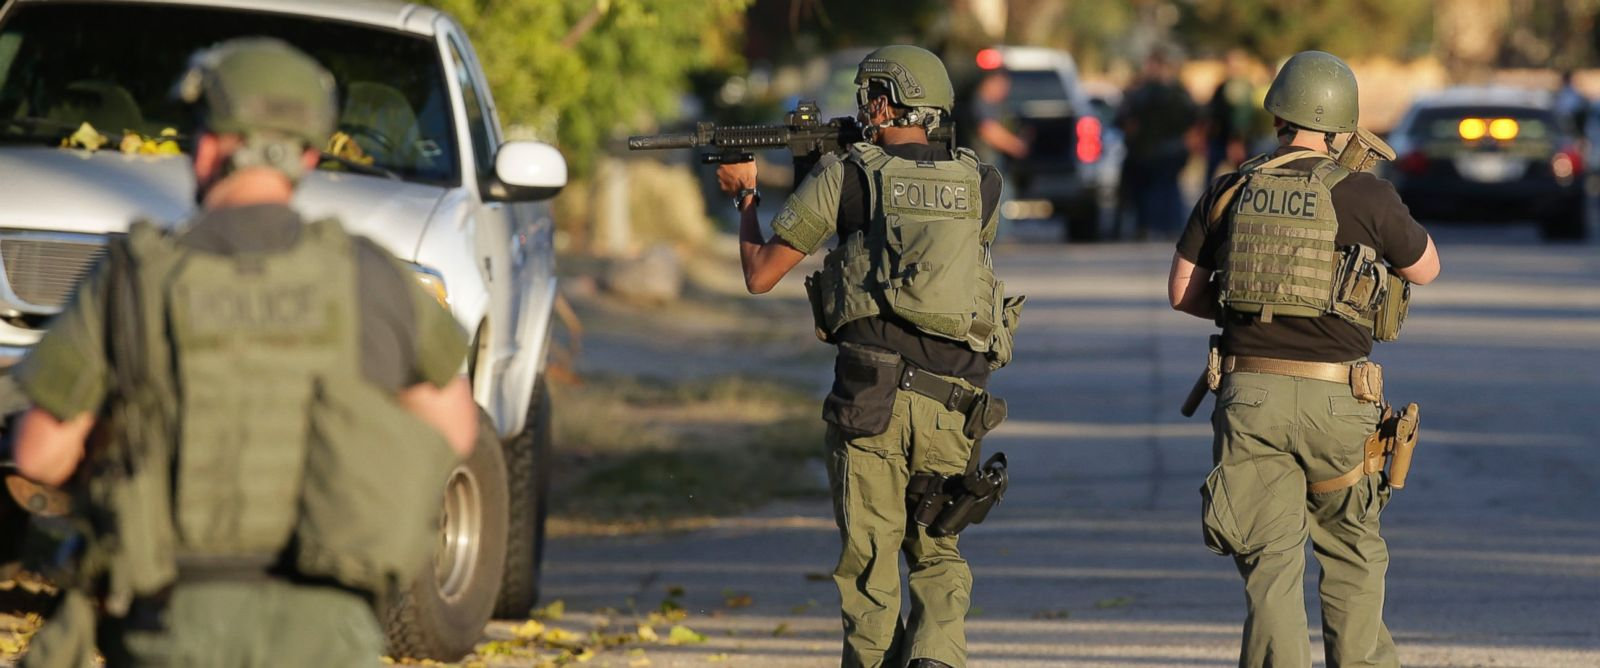 PHOTO: Law enforcement search for a suspect in a mass shooting at a Southern California social services center on Wednesday, Dec. 2, 2015, in San Bernardino, Calif.